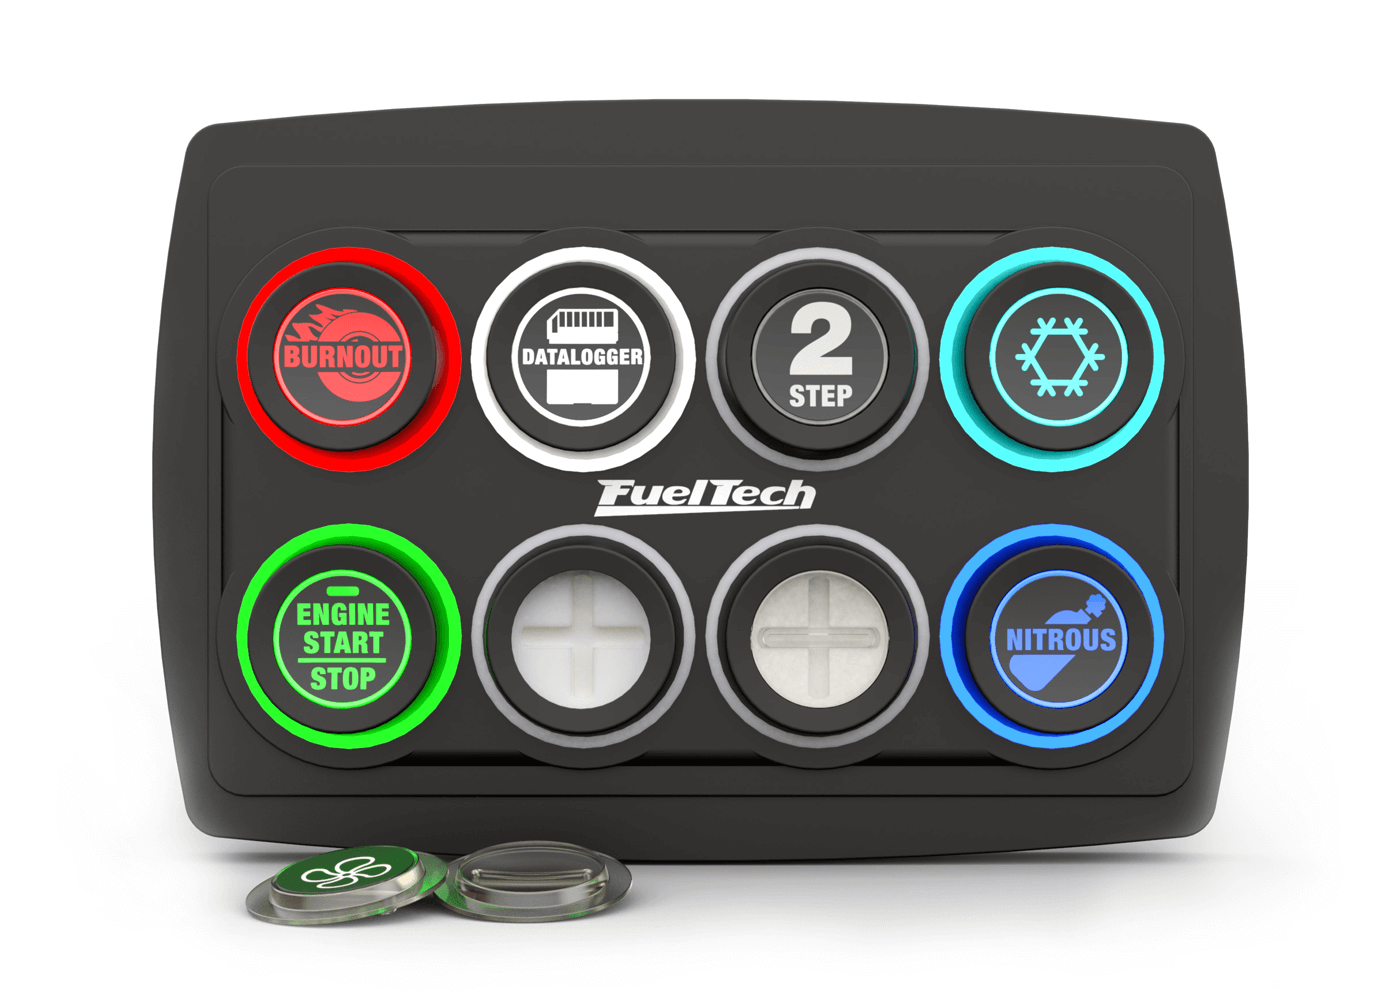 Switchpanel Fueltech